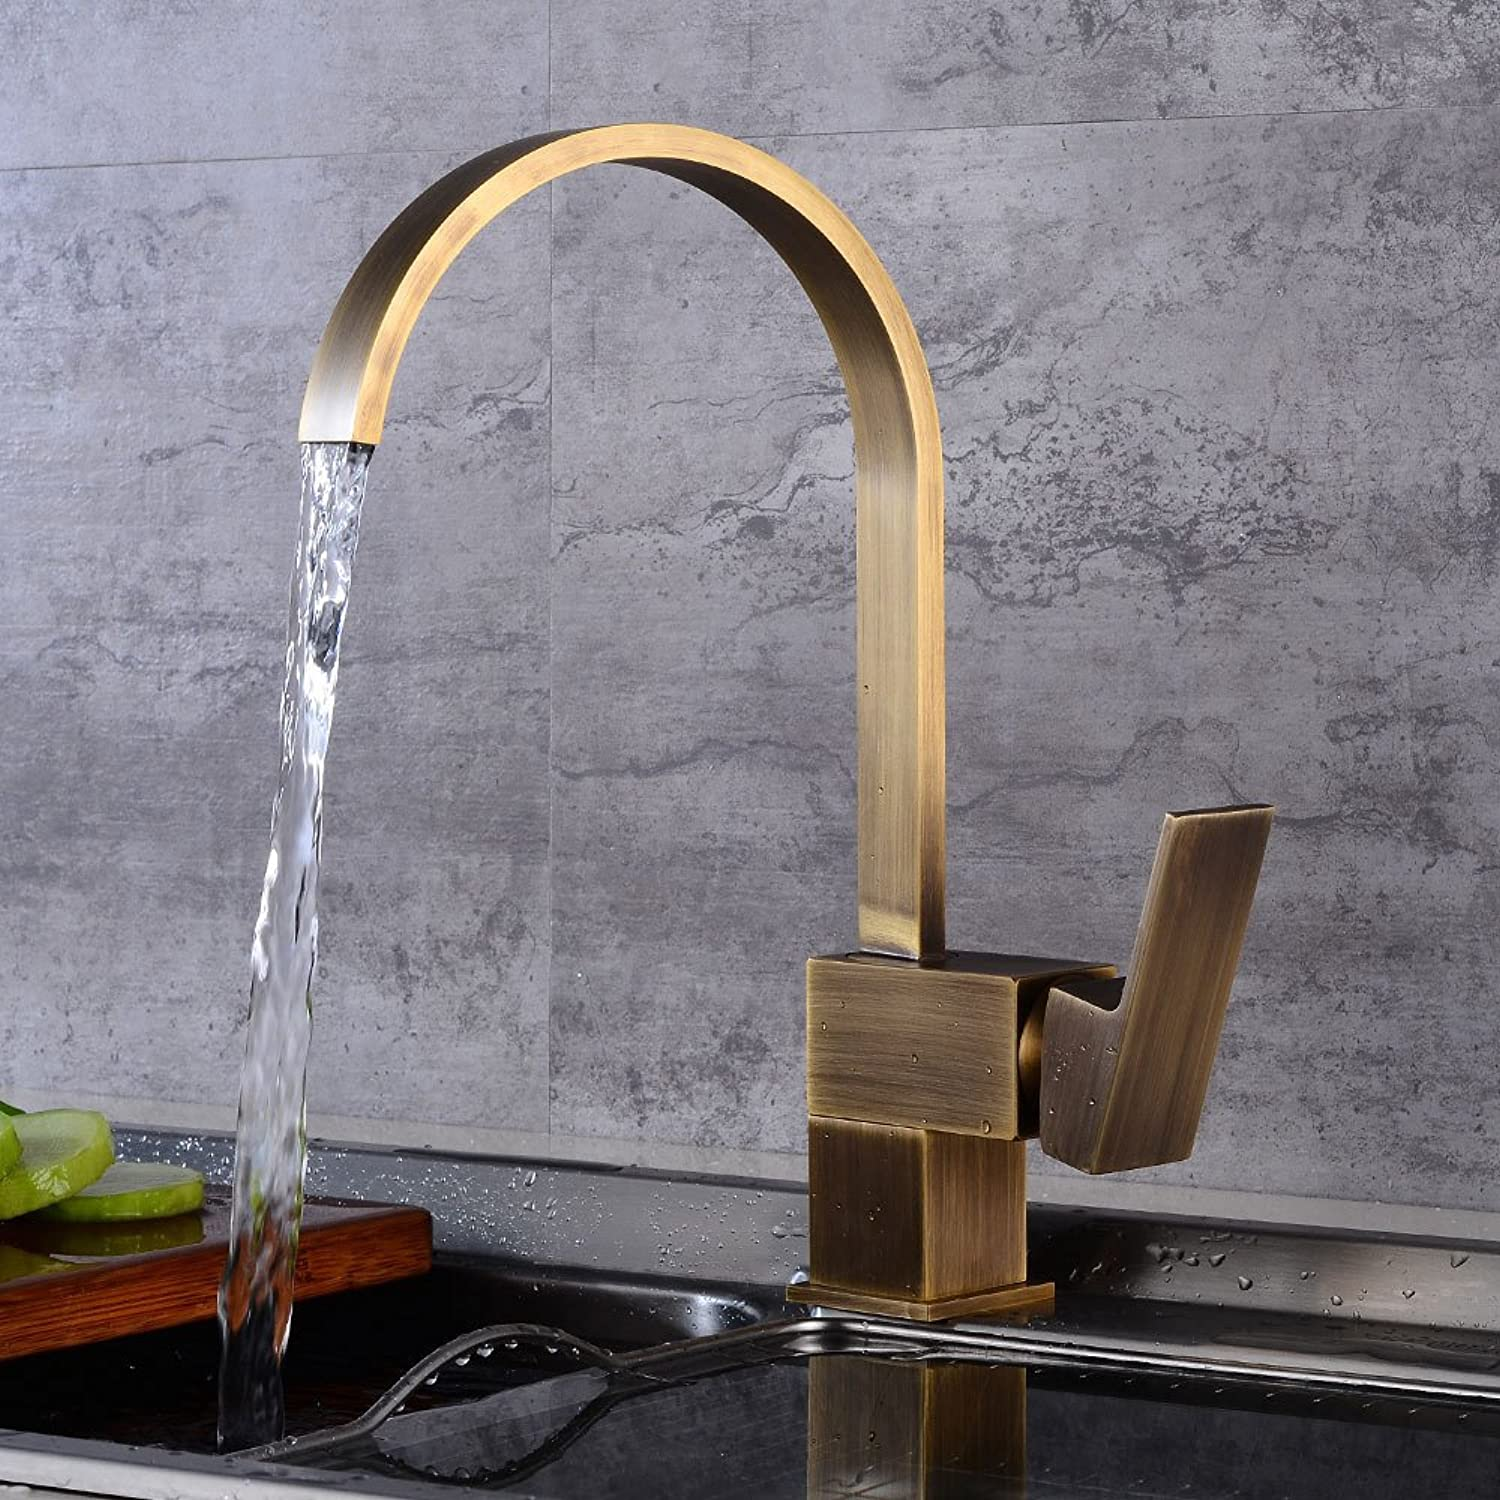 European Antique Hot and Cold Dish Faucet redary Sink Dish Faucet